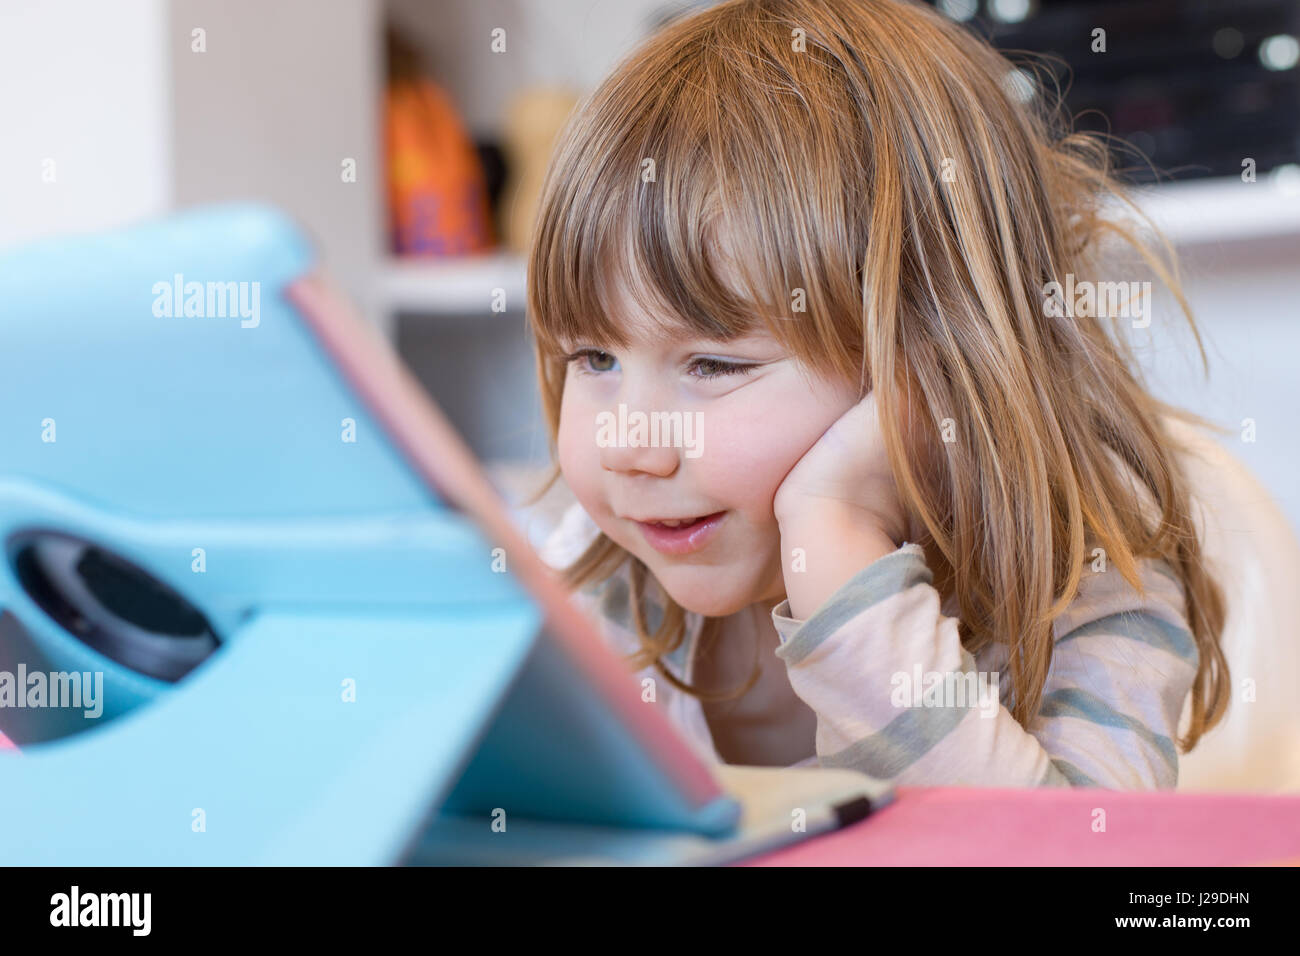 smiling face expression of three years old blonde child sitting indoor, with head over hand watching digital tablet - Stock Image